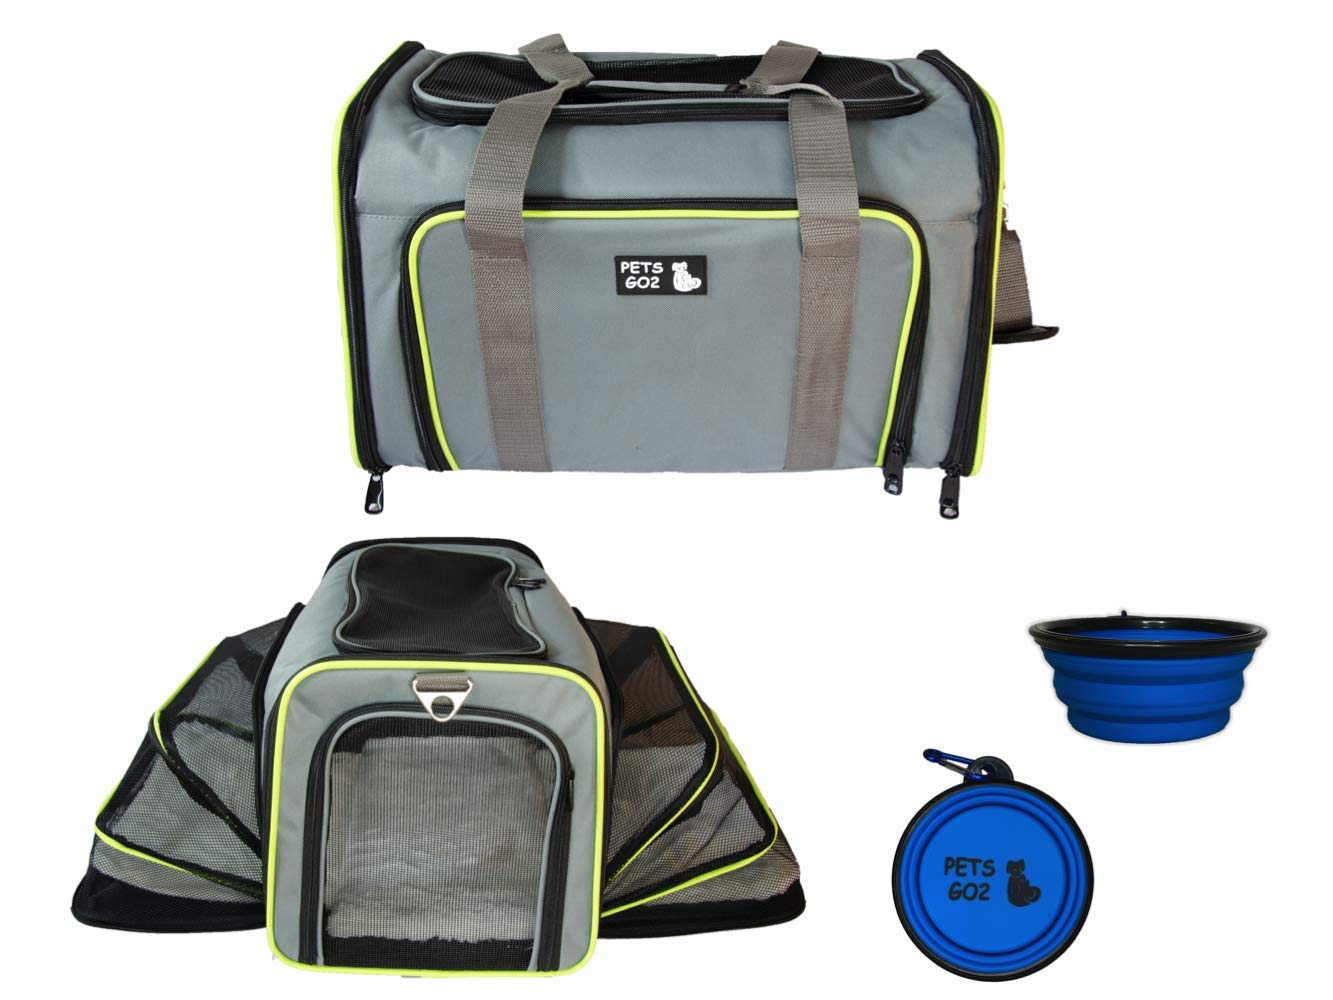 PETS GO2 Pet Carrier for Dogs & Cats | Best Airline-Approved Dog Travel Bag for Pet Safety & Security | Adjustable Carrier Size for a Small. Medium, or Large Dog, Cat, Bird, or Guinea Pig | Grey by PETS GO2